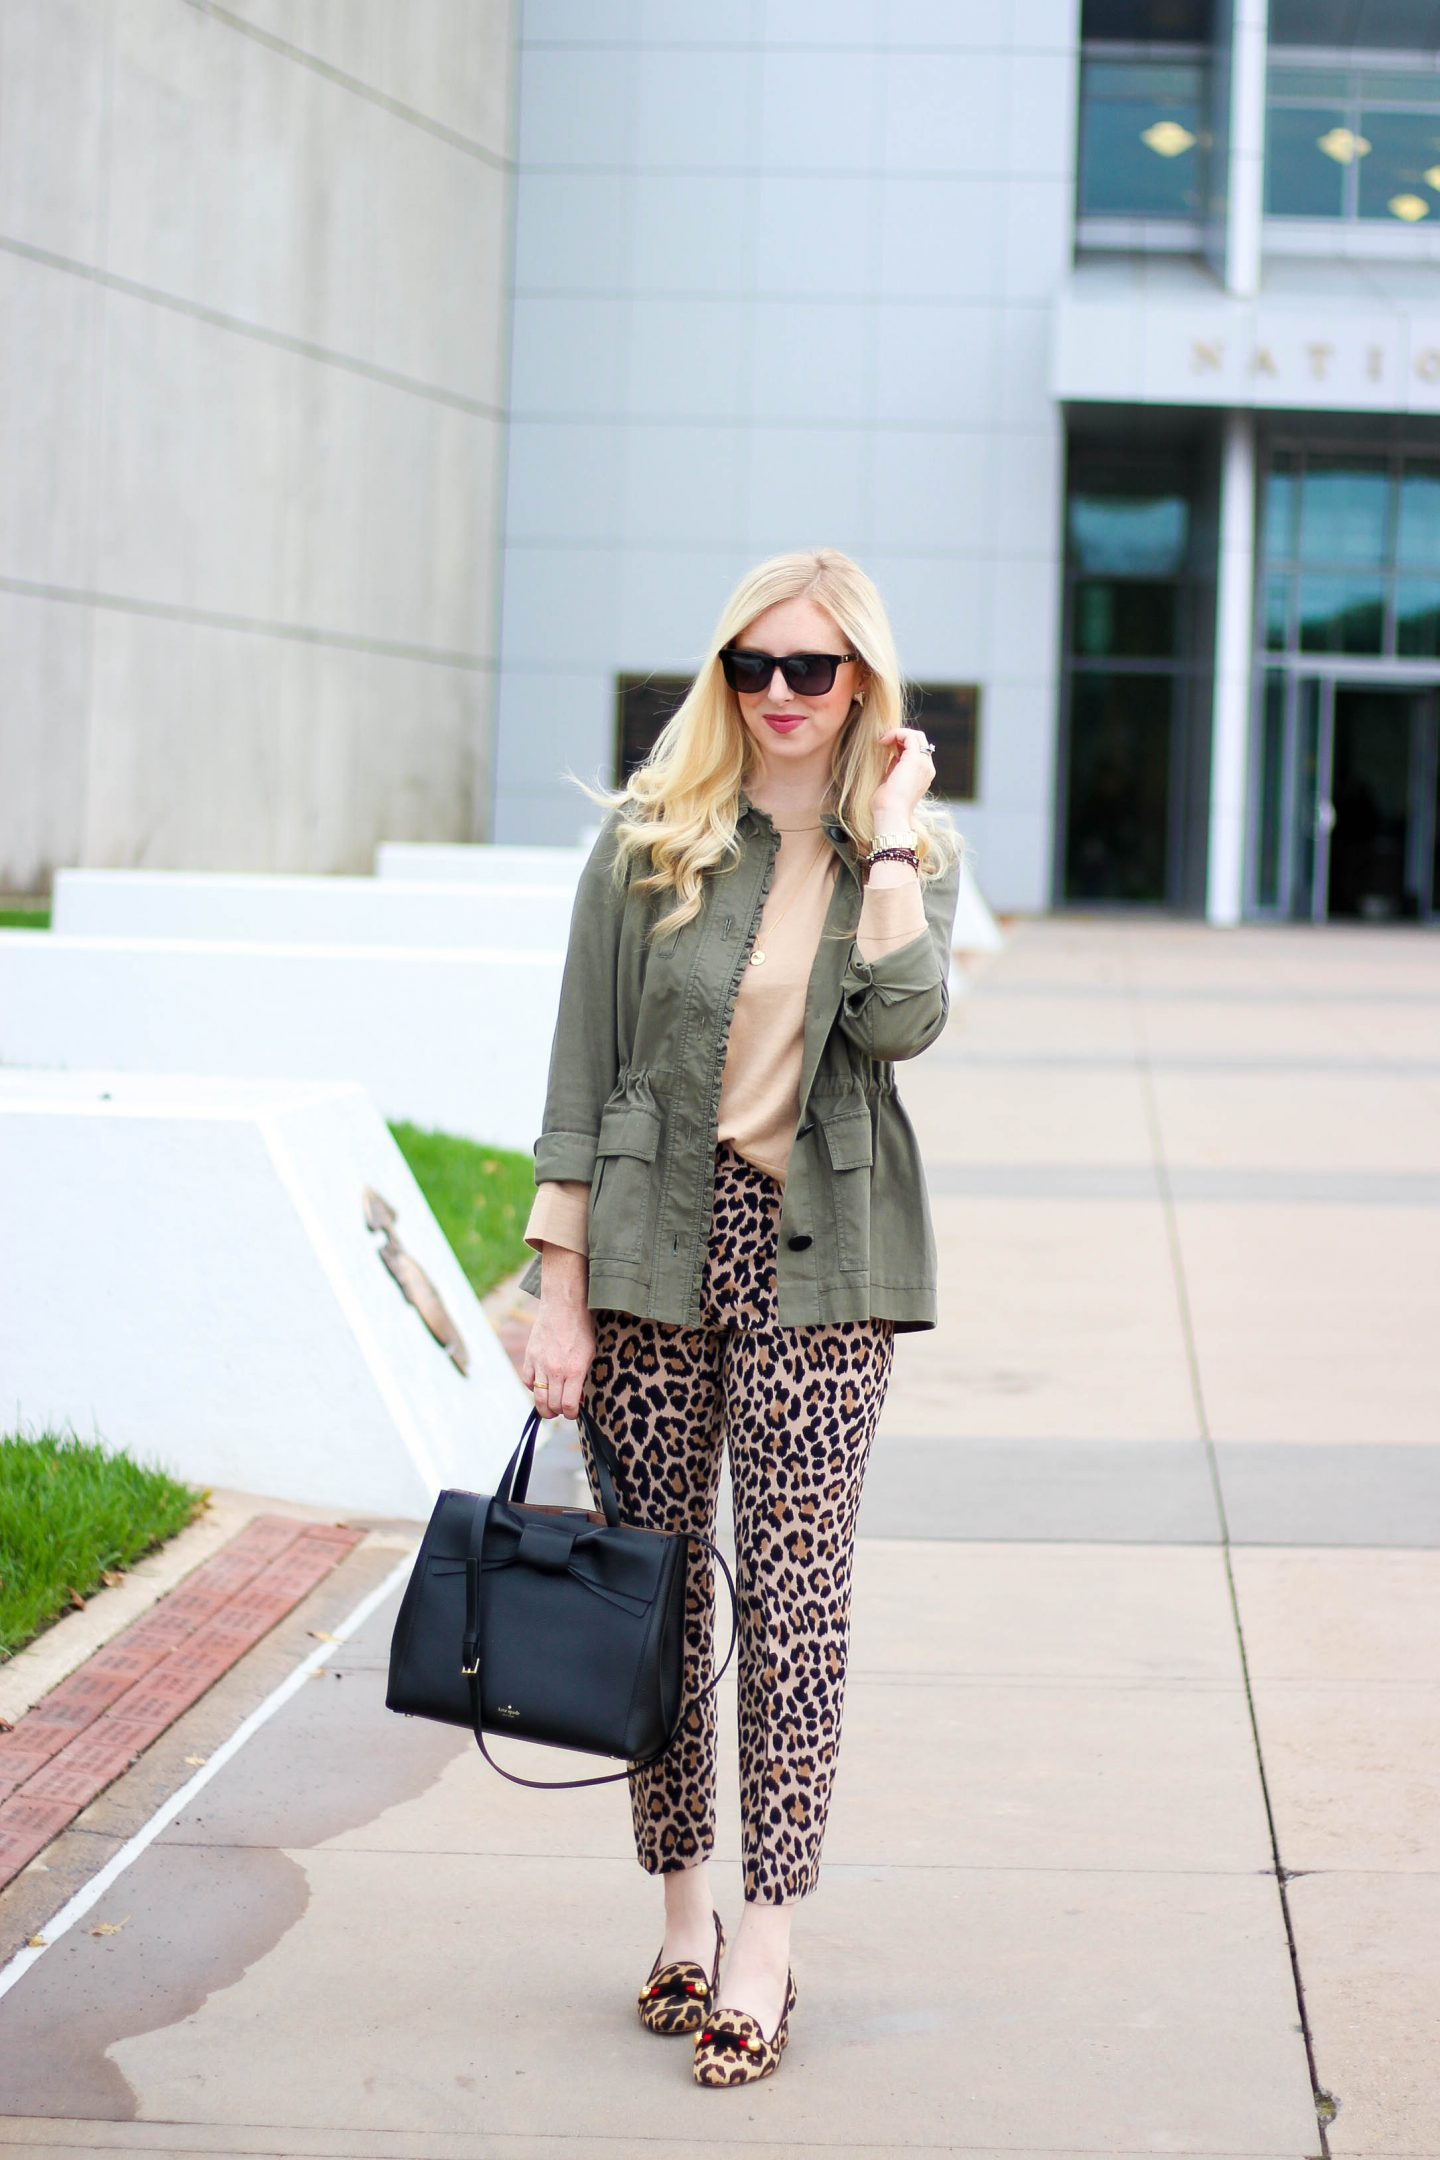 A Chic Fall Outfit Wearing Leopard x Leopard by Washington DC blogger Styled Blonde